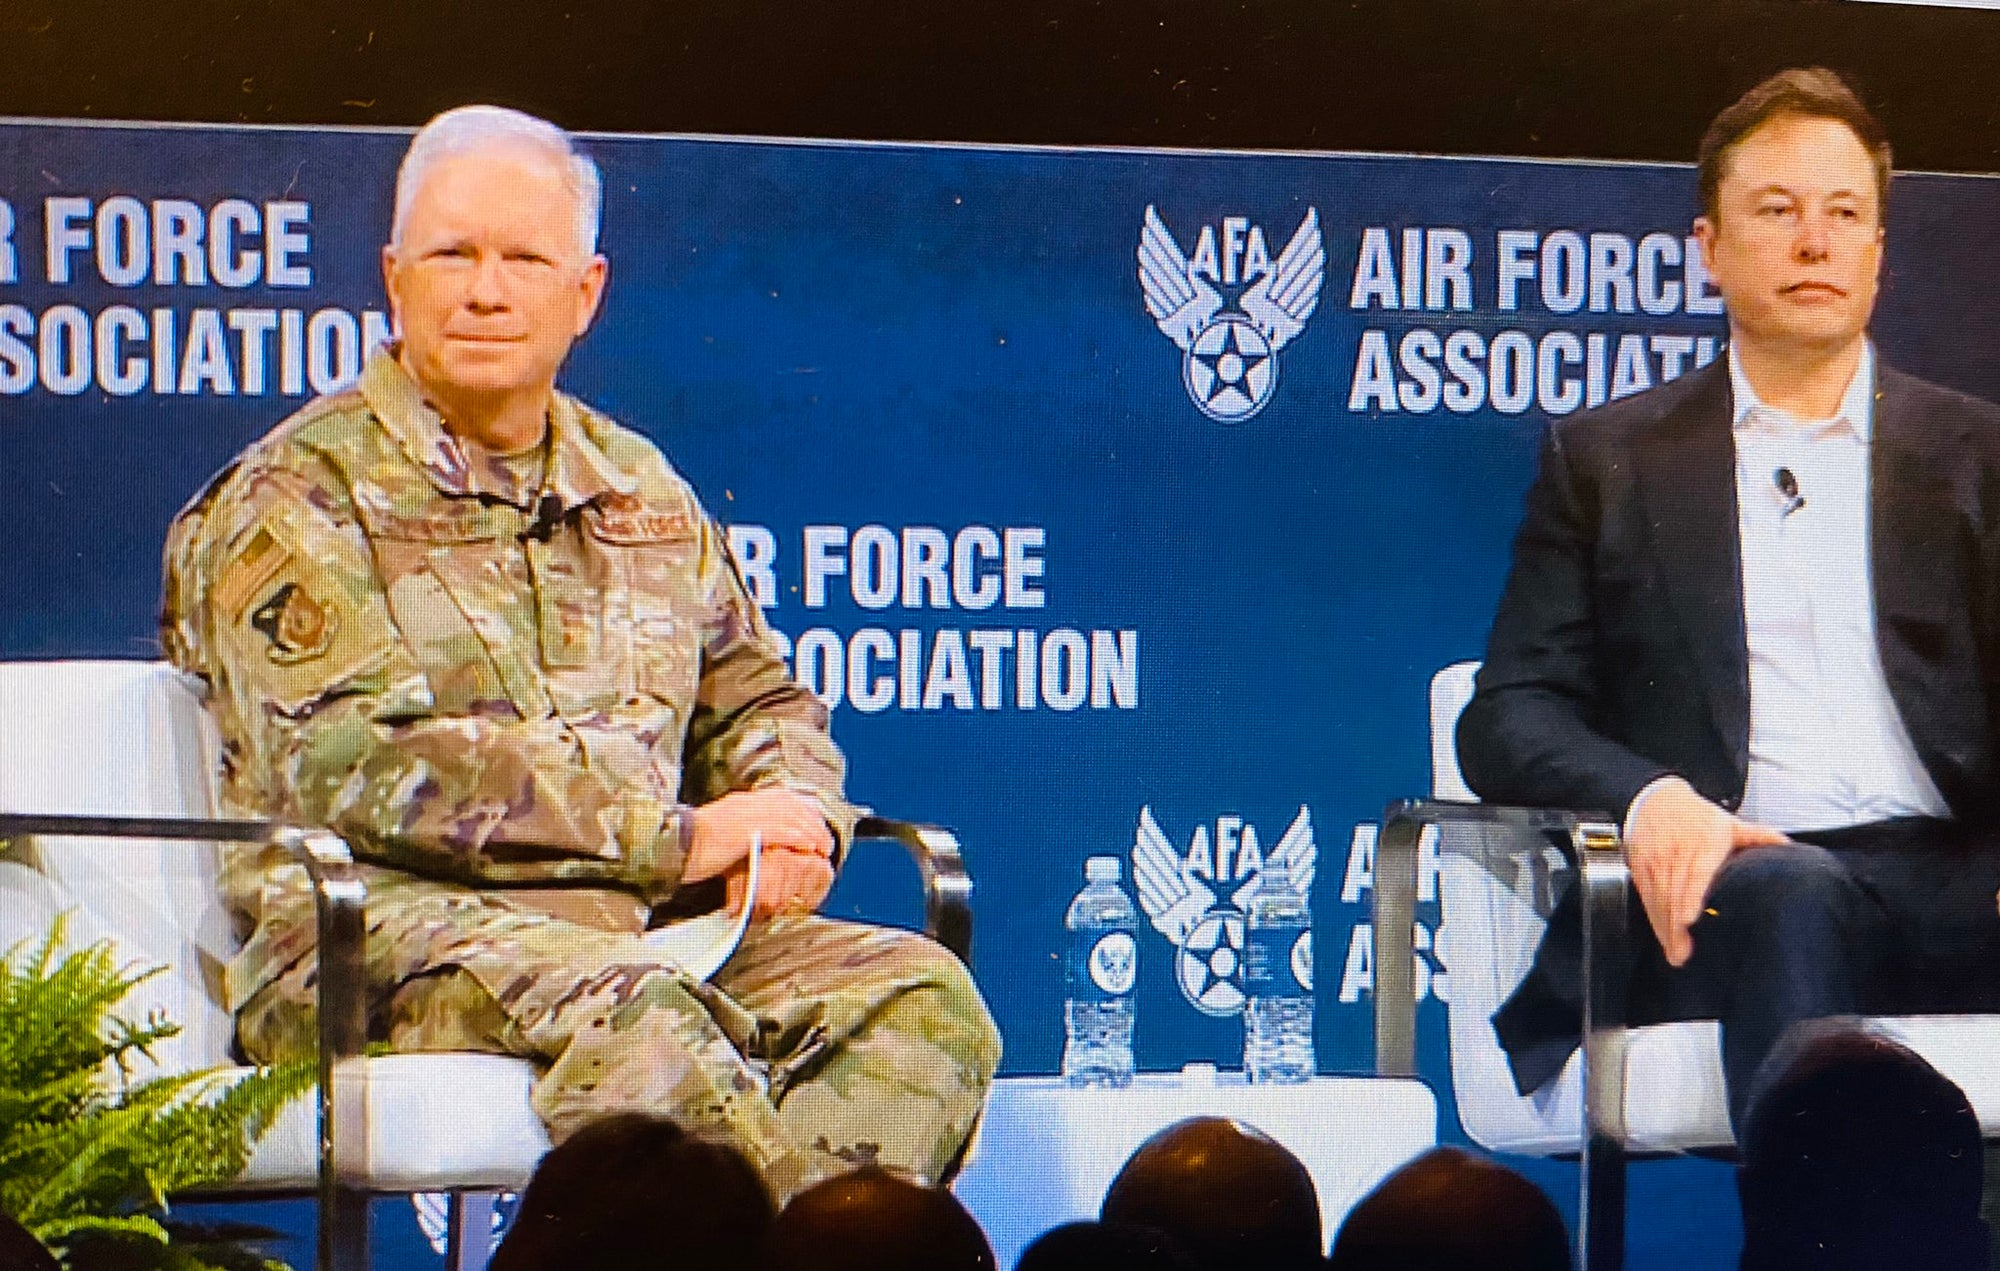 Elon Musk participated in a fireside chat at Air Force Association's 2020 Air Warfare Symposium